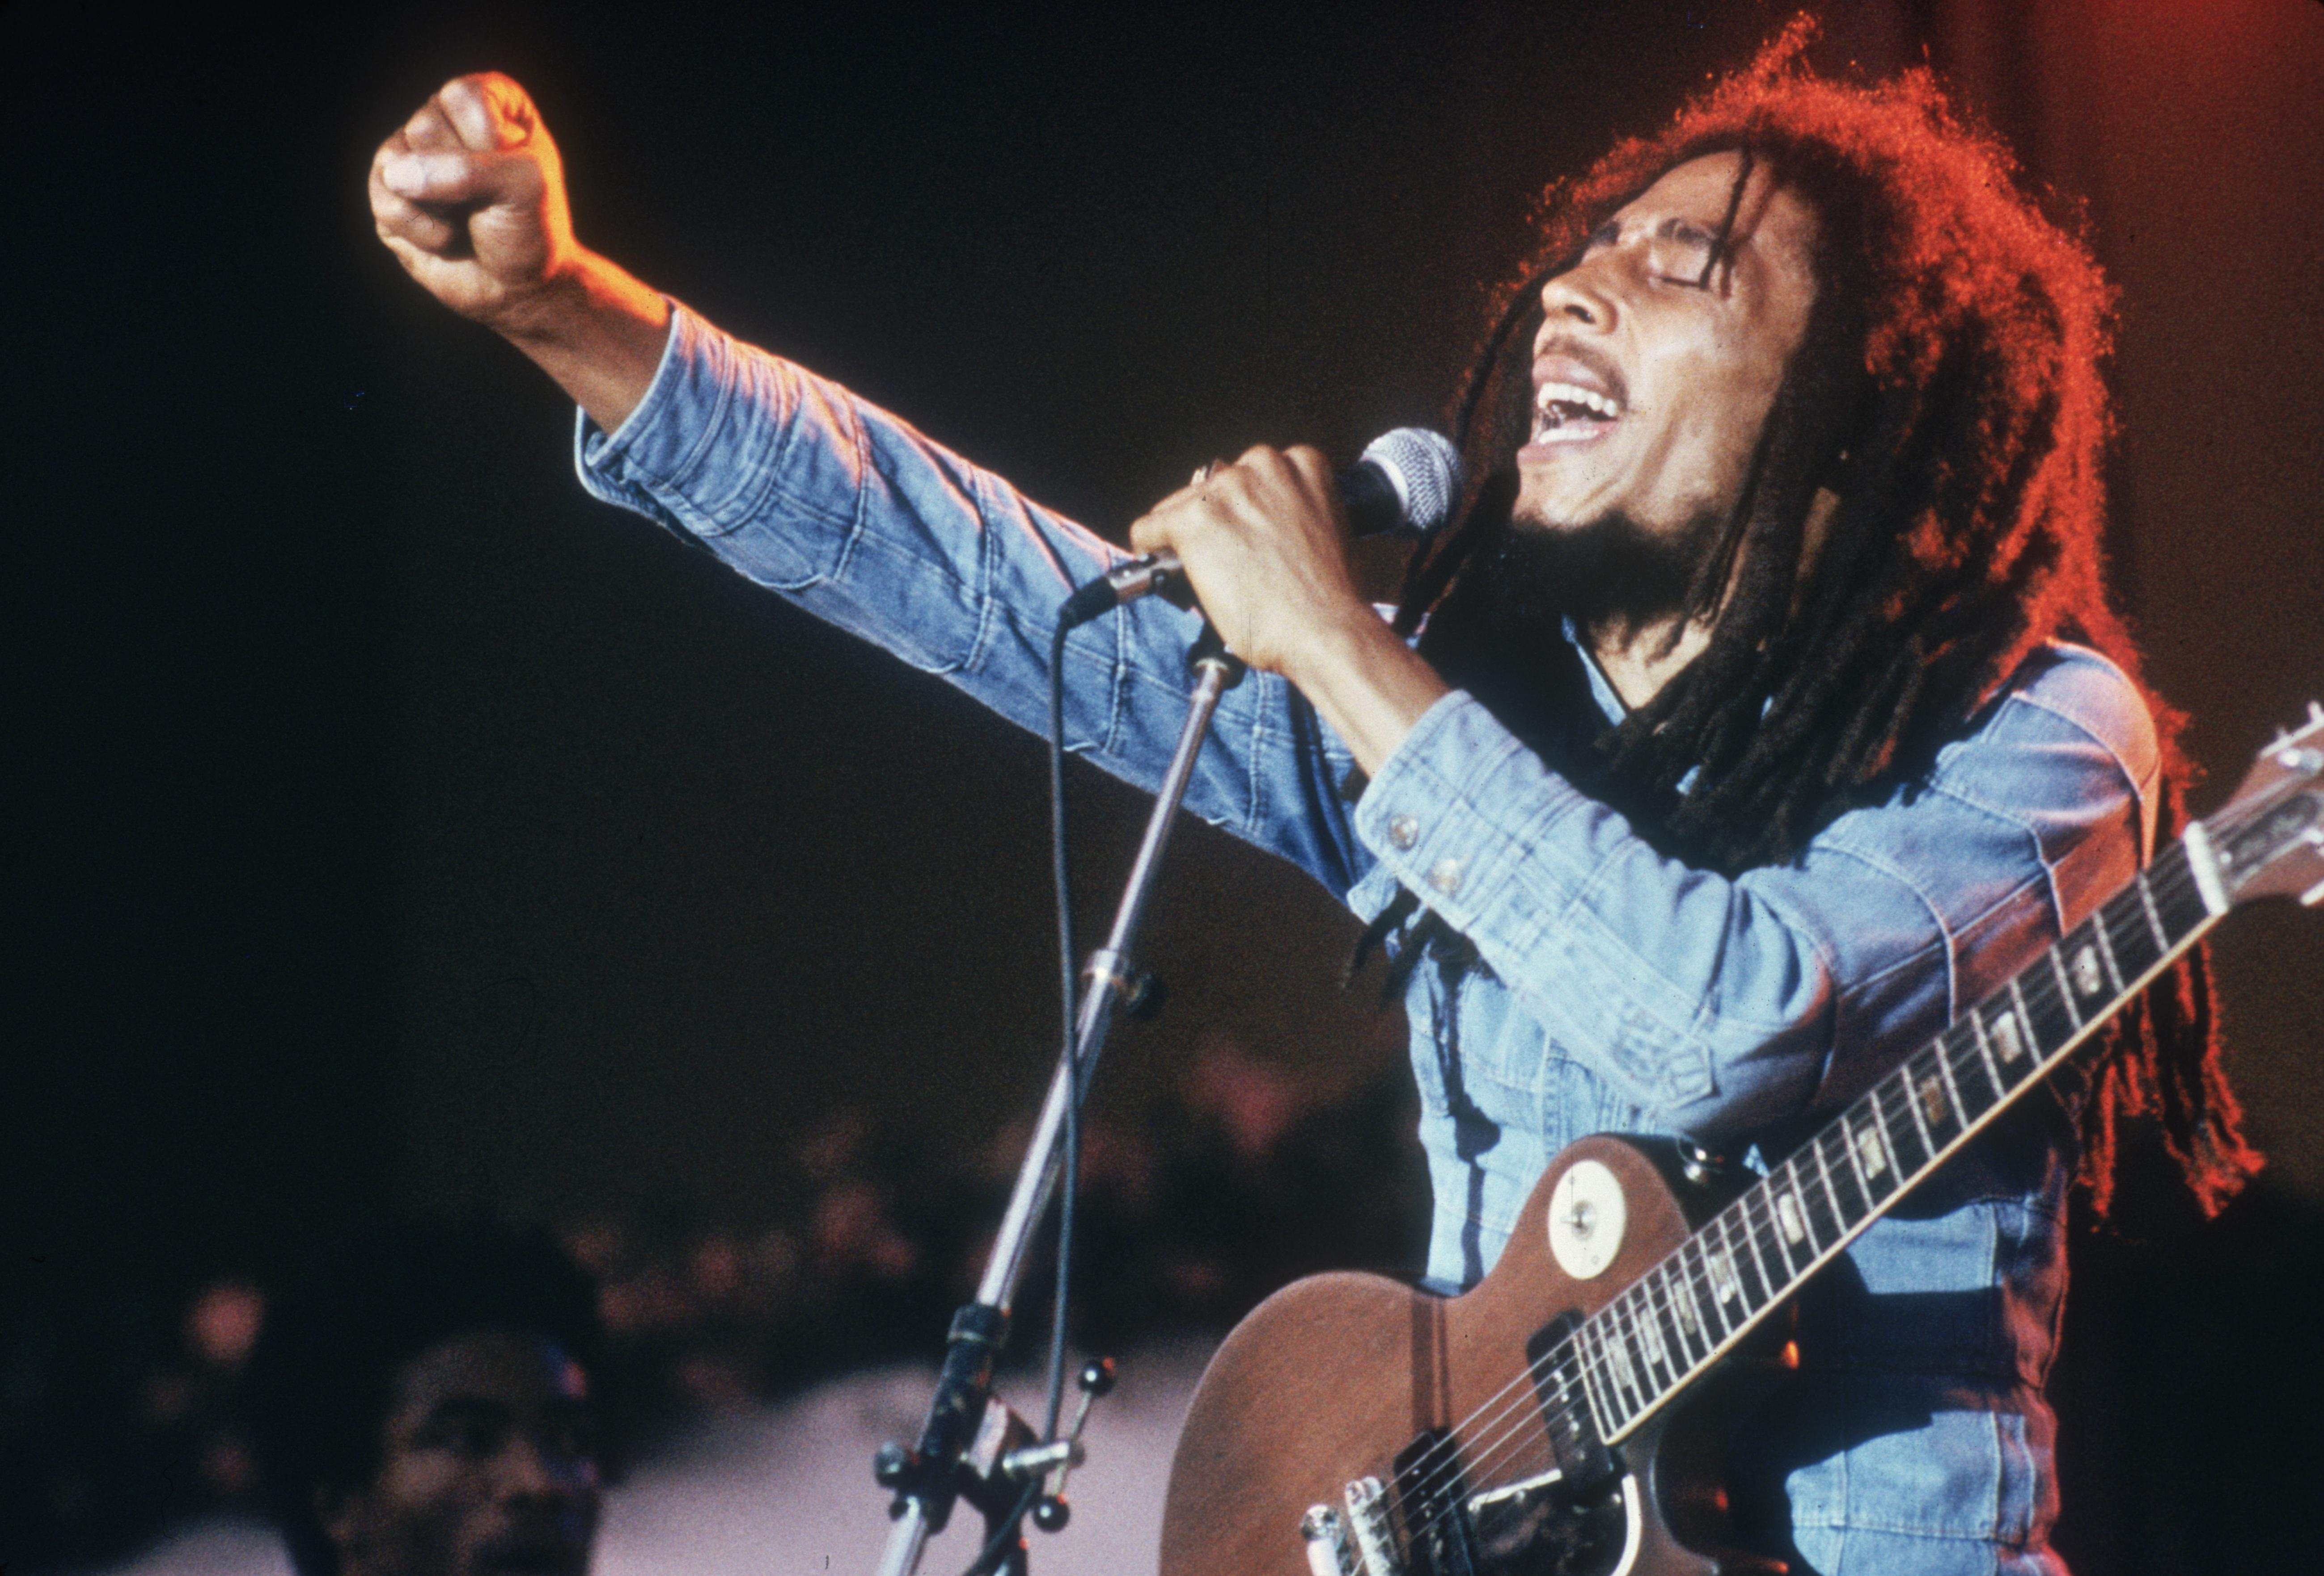 Lost Bob Marley Tapes Have Resurfacedjust In Time For His Birthday